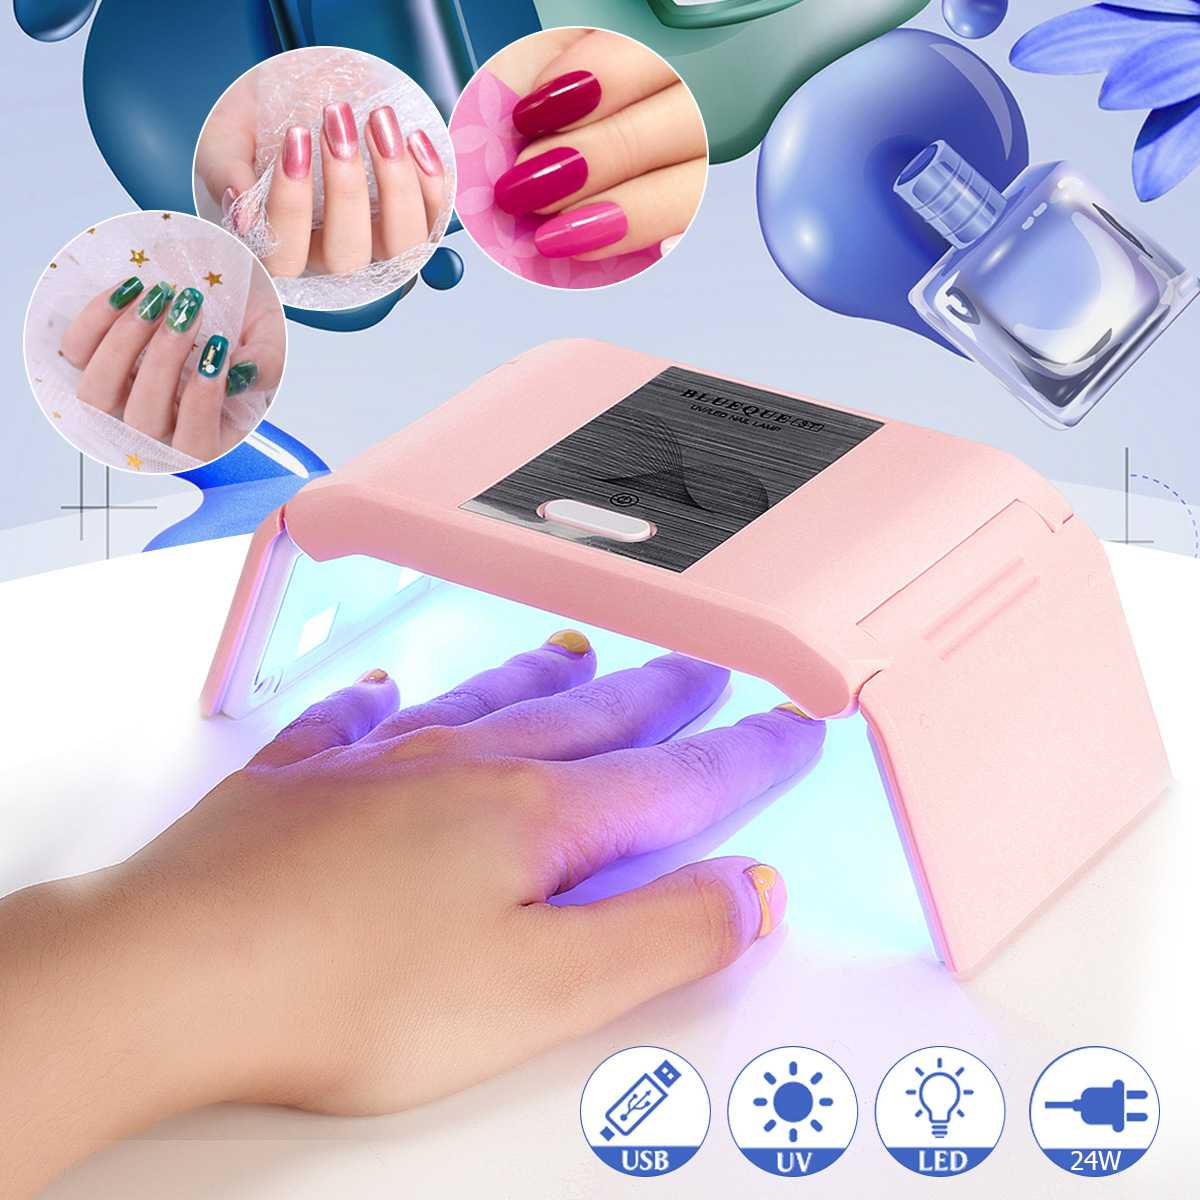 24W Mini LED UV Art Nail Polish USB Foldable Dryer Lamp 12 LEDs Gel Acrylic C Uring Ligh Drying Tool